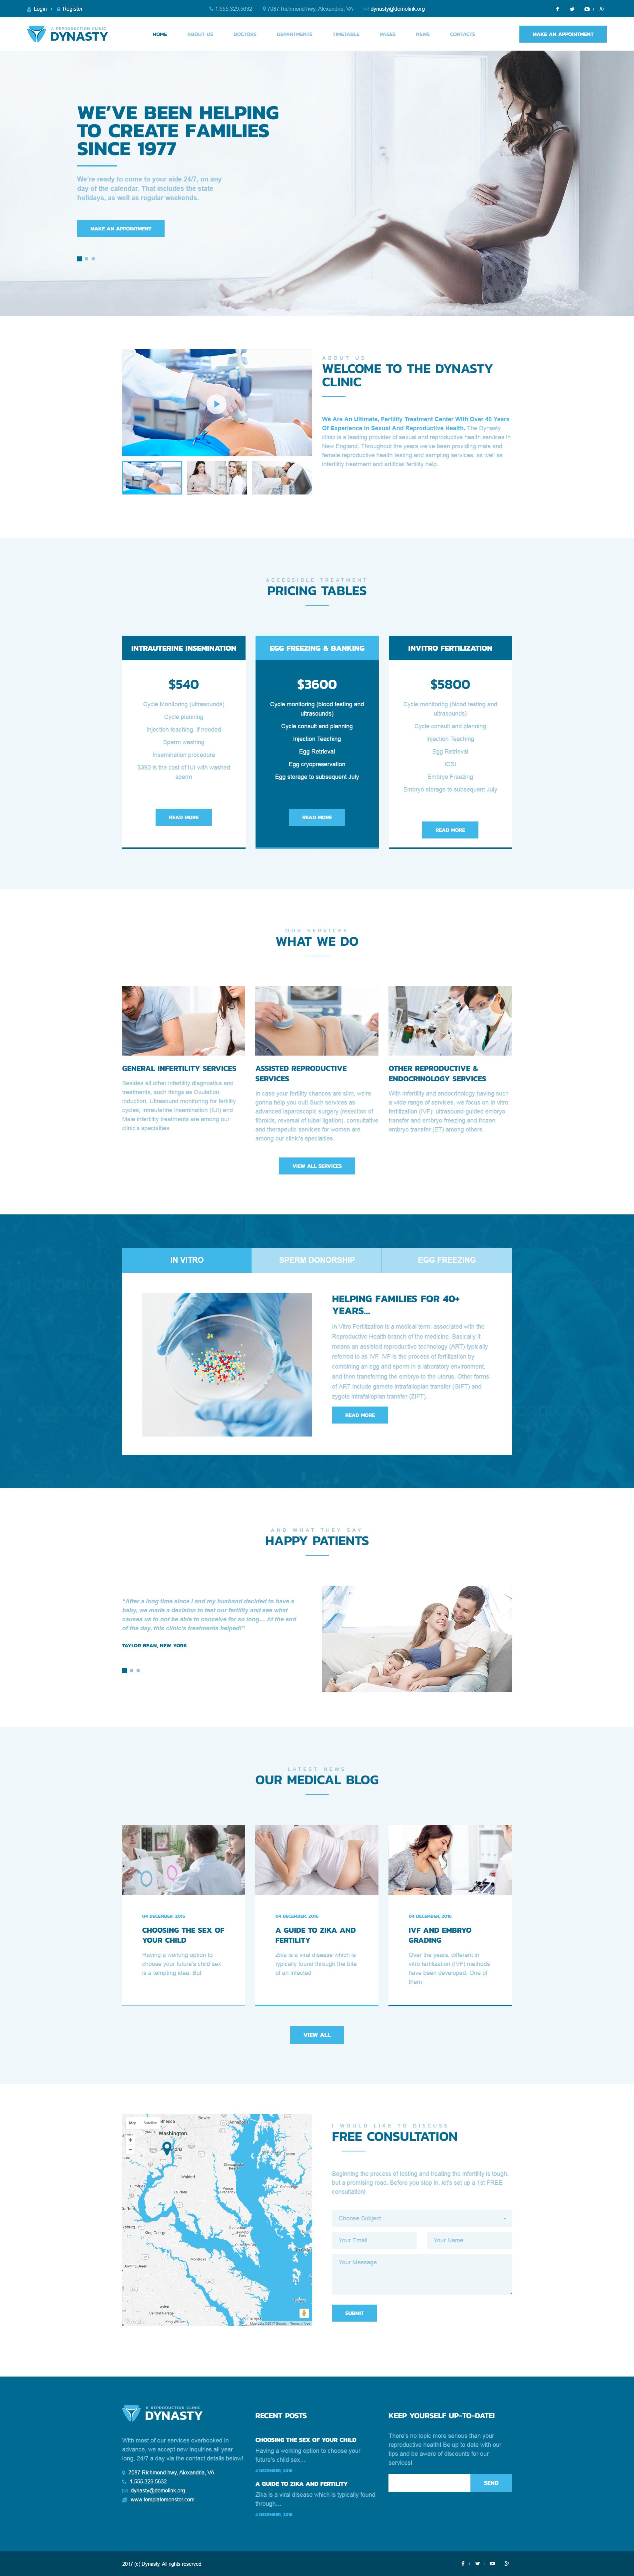 Dynasty - Reproduction Clinic Responsive WordPress Theme | Pinterest